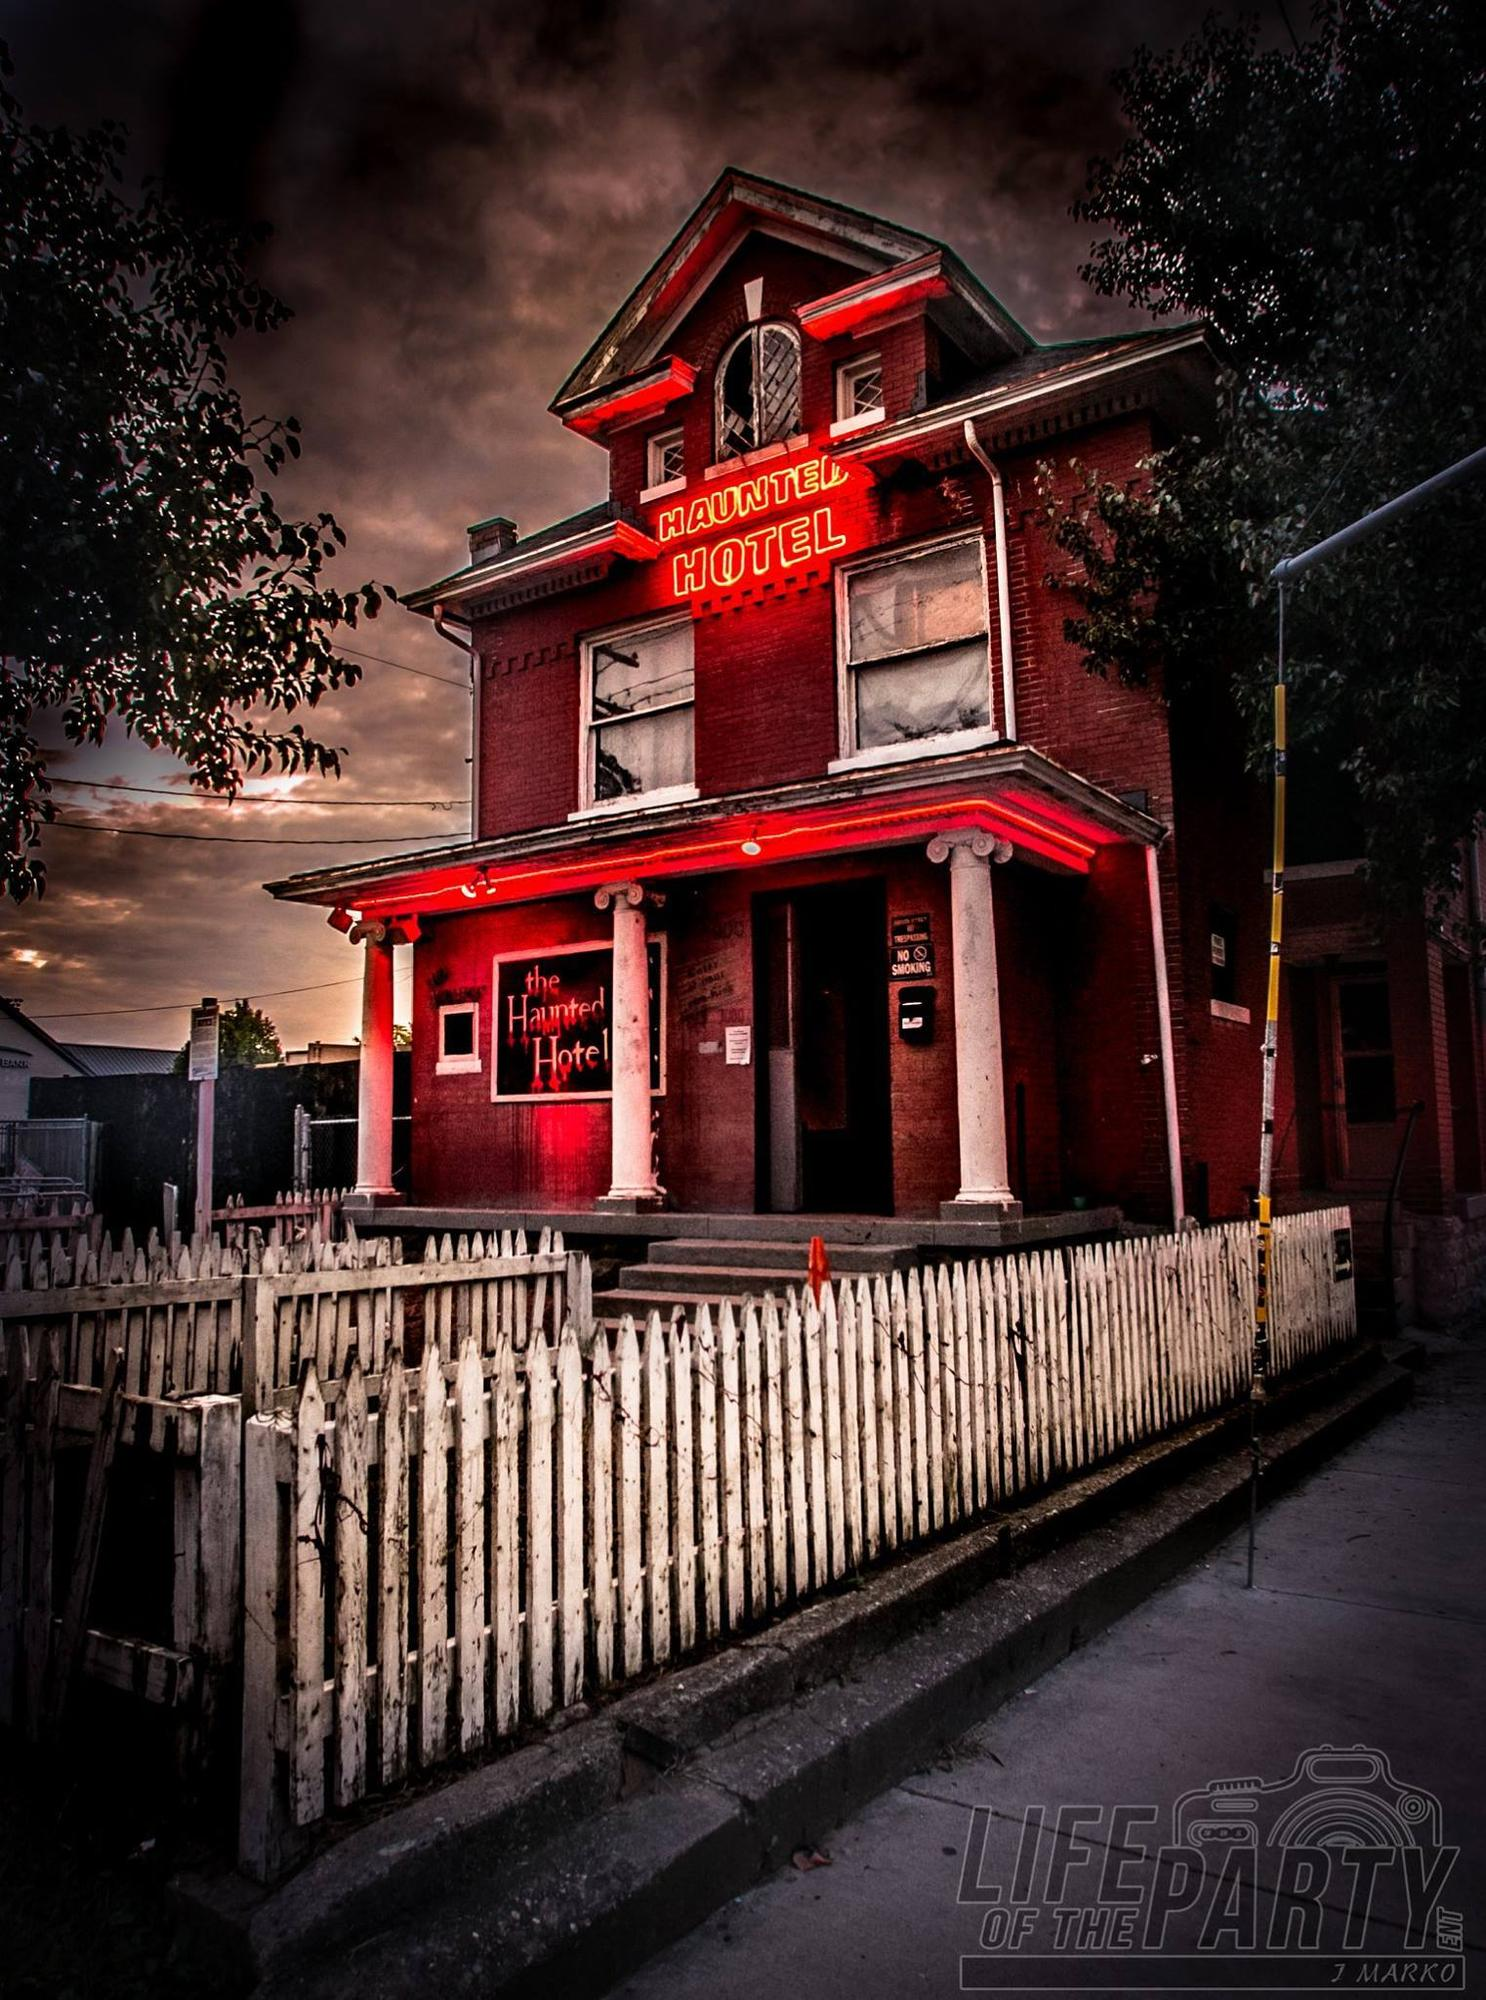 The Haunted Hotel - Kentucky's Scariest Haunted House ...